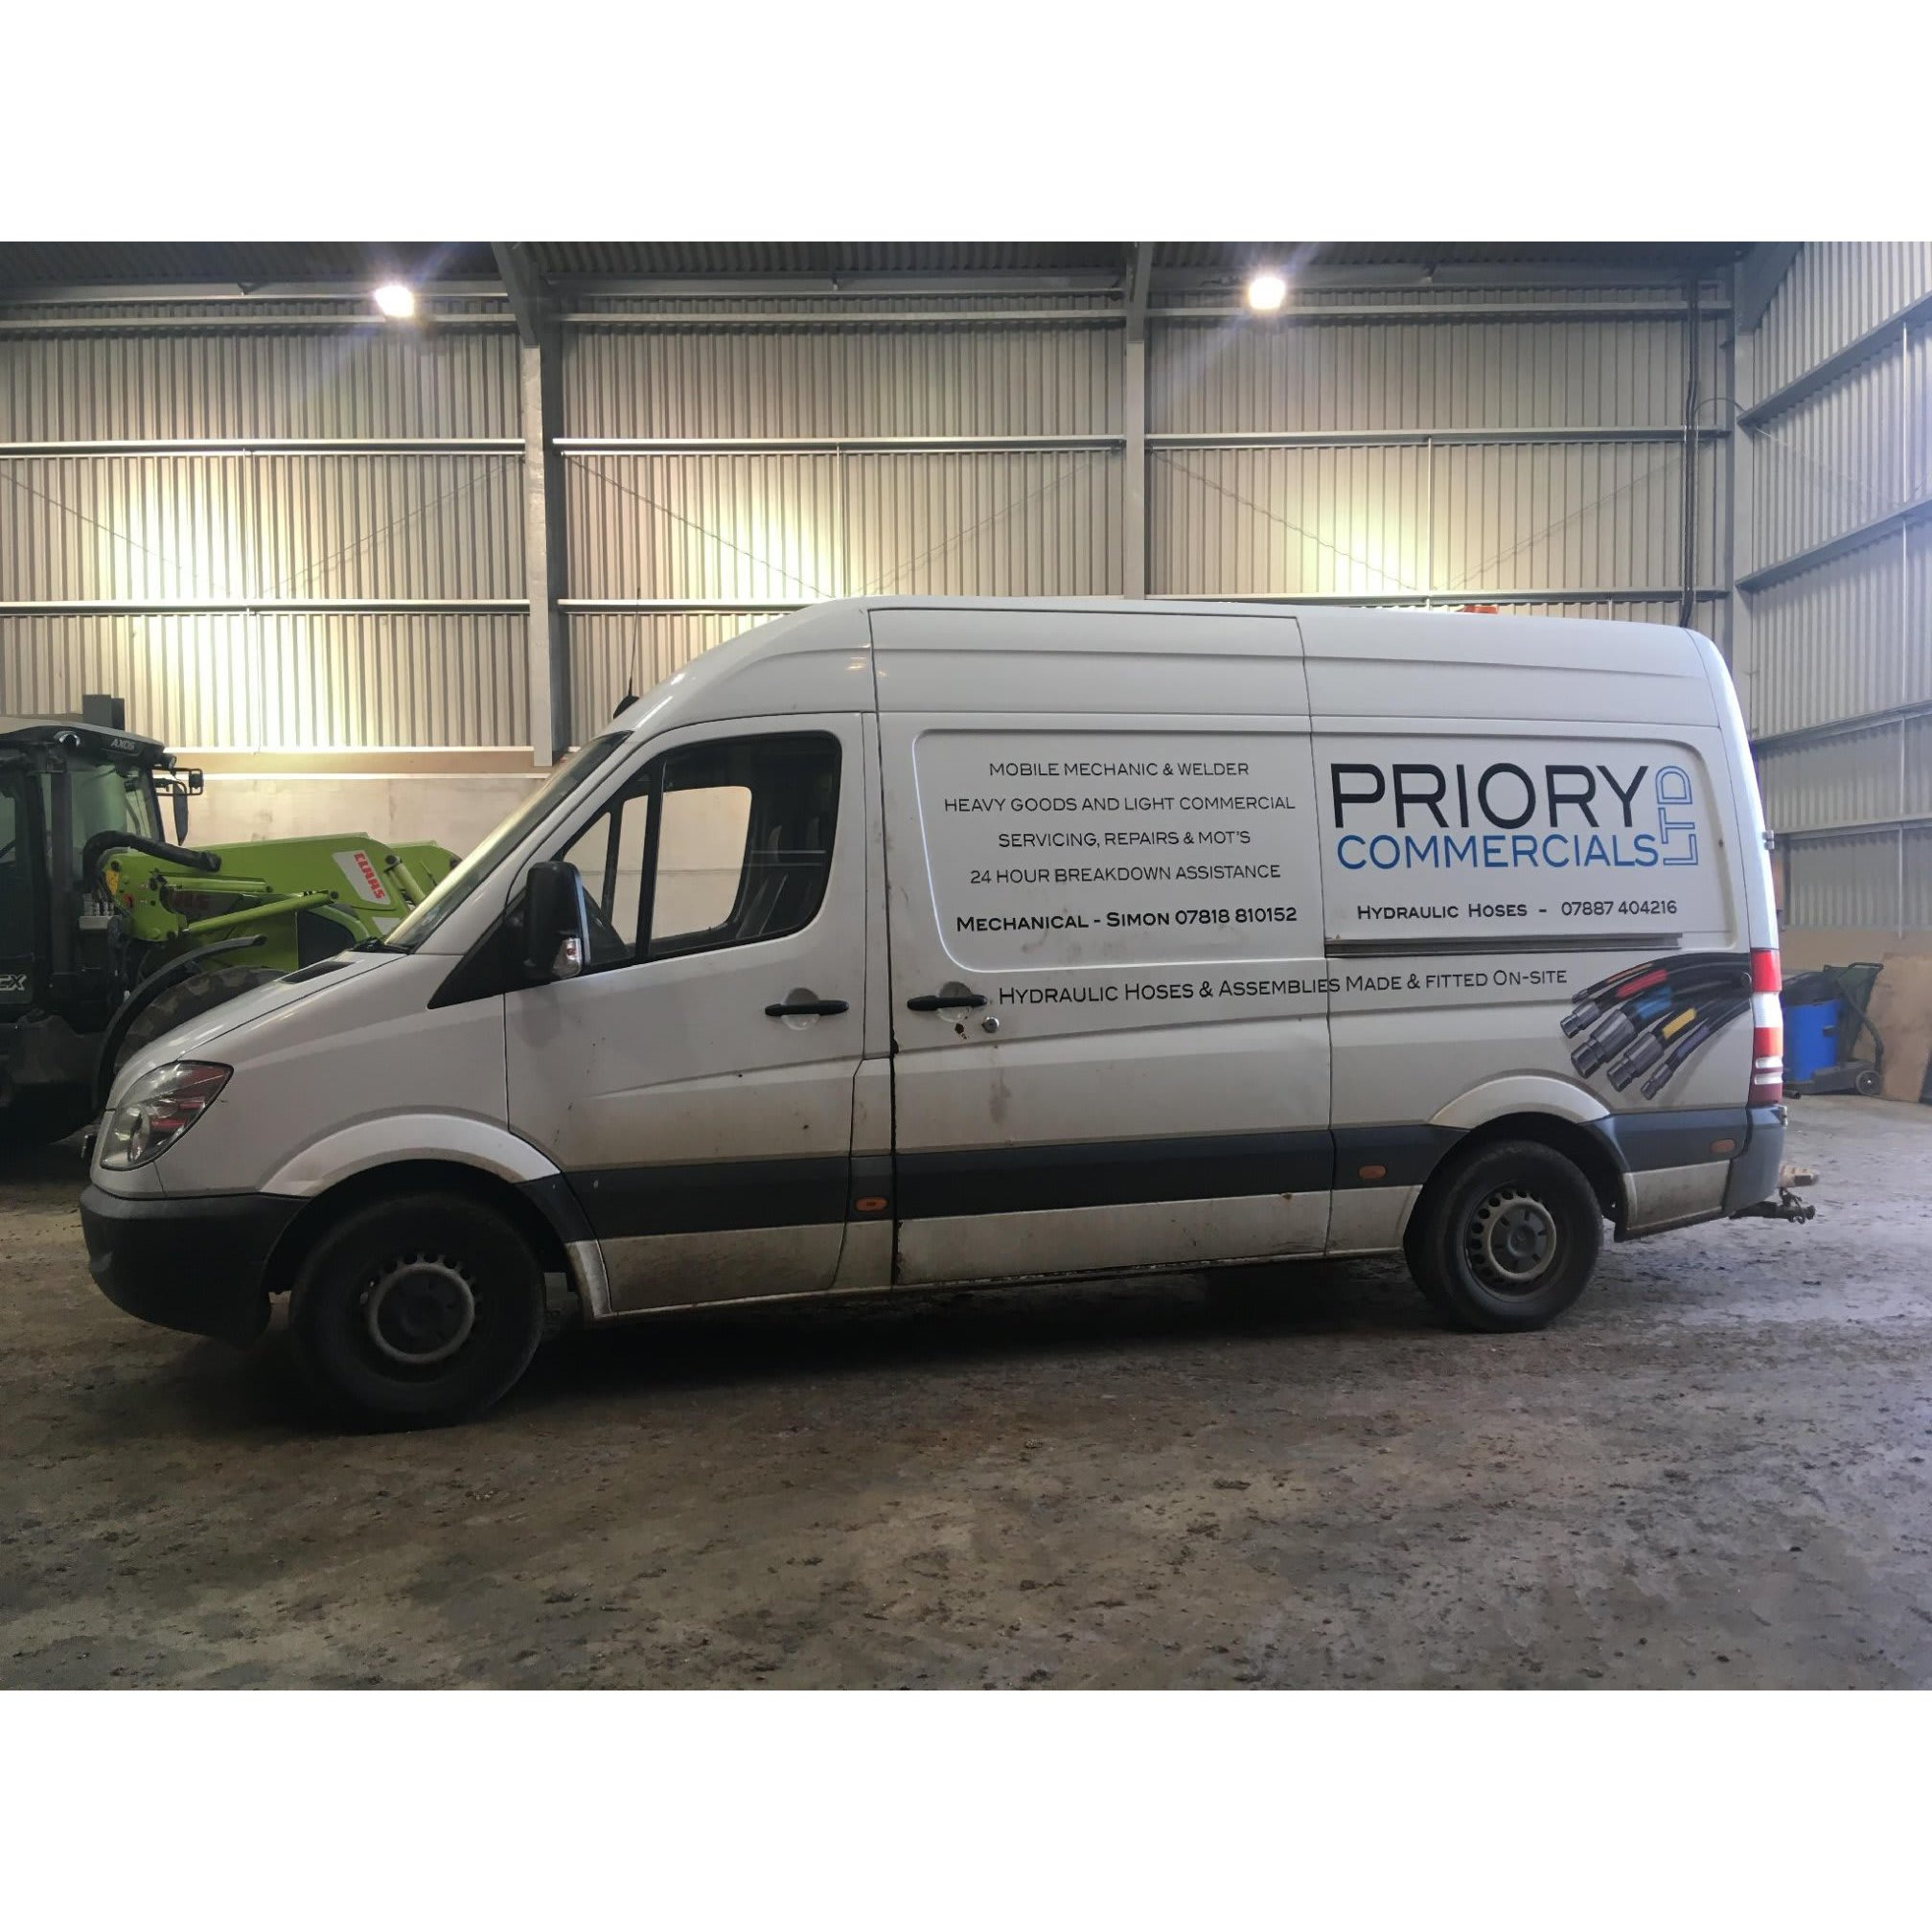 Priory Commercials Ltd - Melton Mowbray, Leicestershire LE14 3YU - 07720 455494 | ShowMeLocal.com